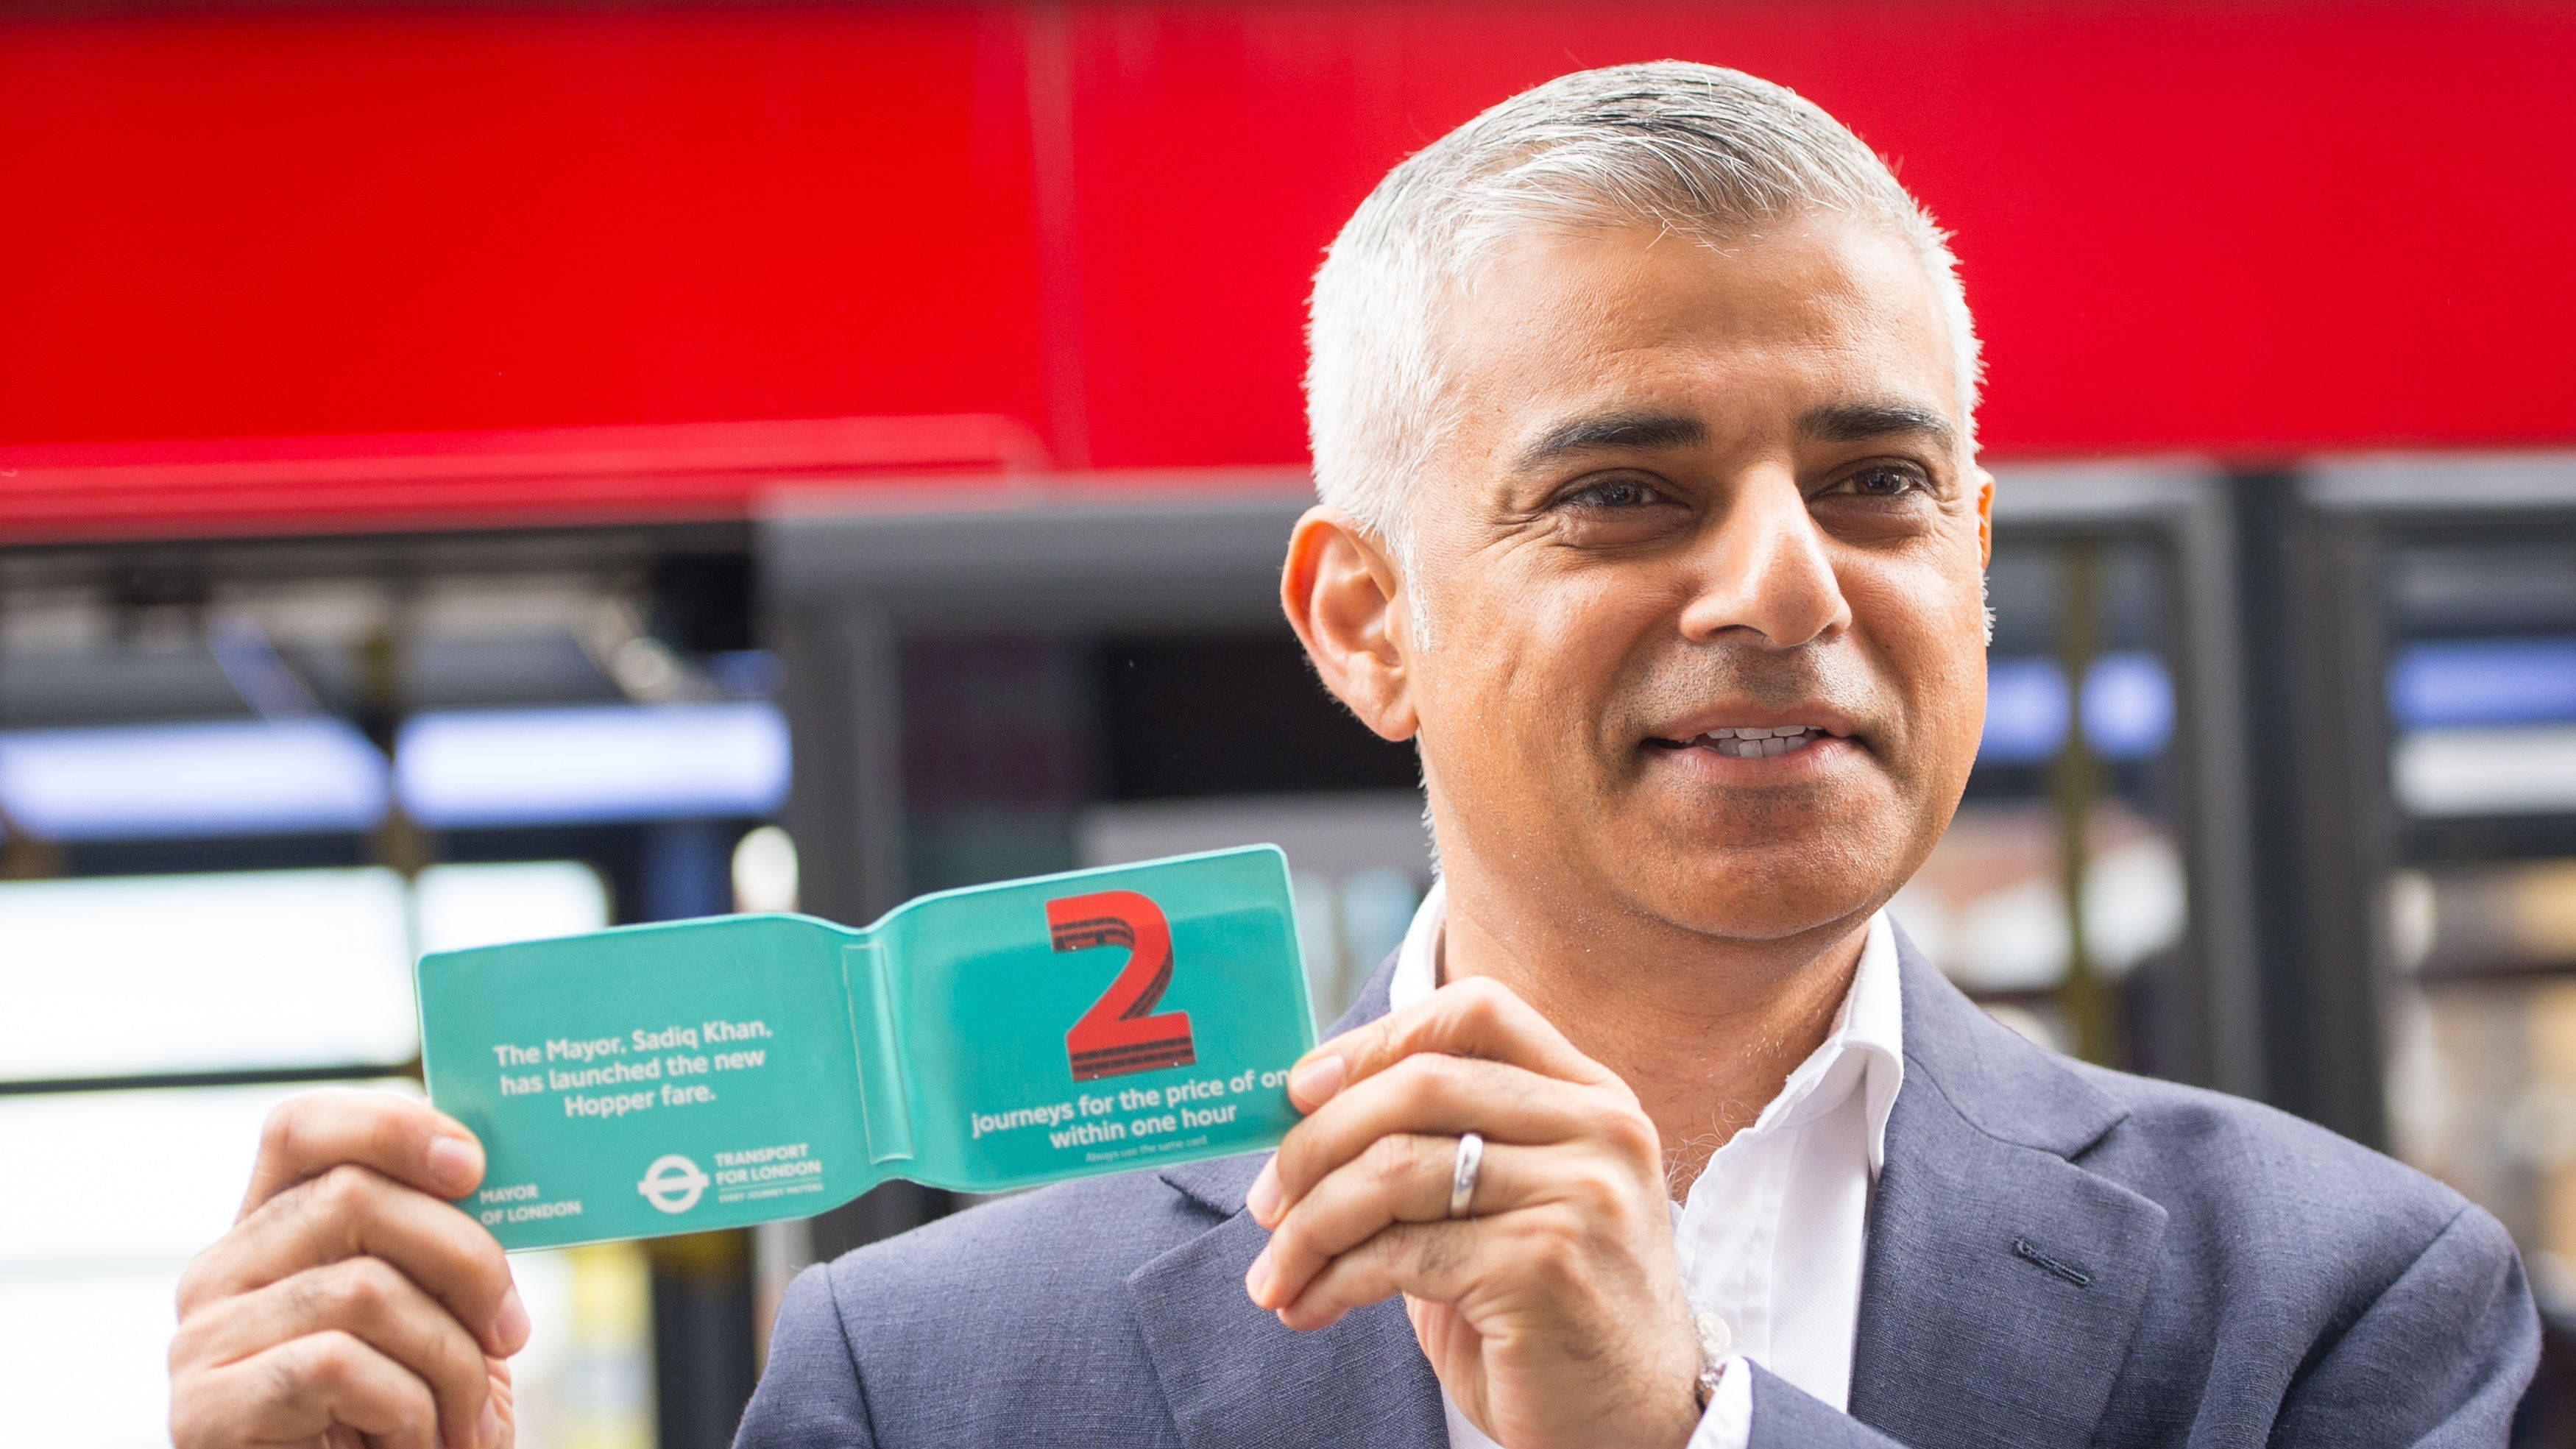 Transport For London Reveal Highest Number Of Journeys Made In An Hour